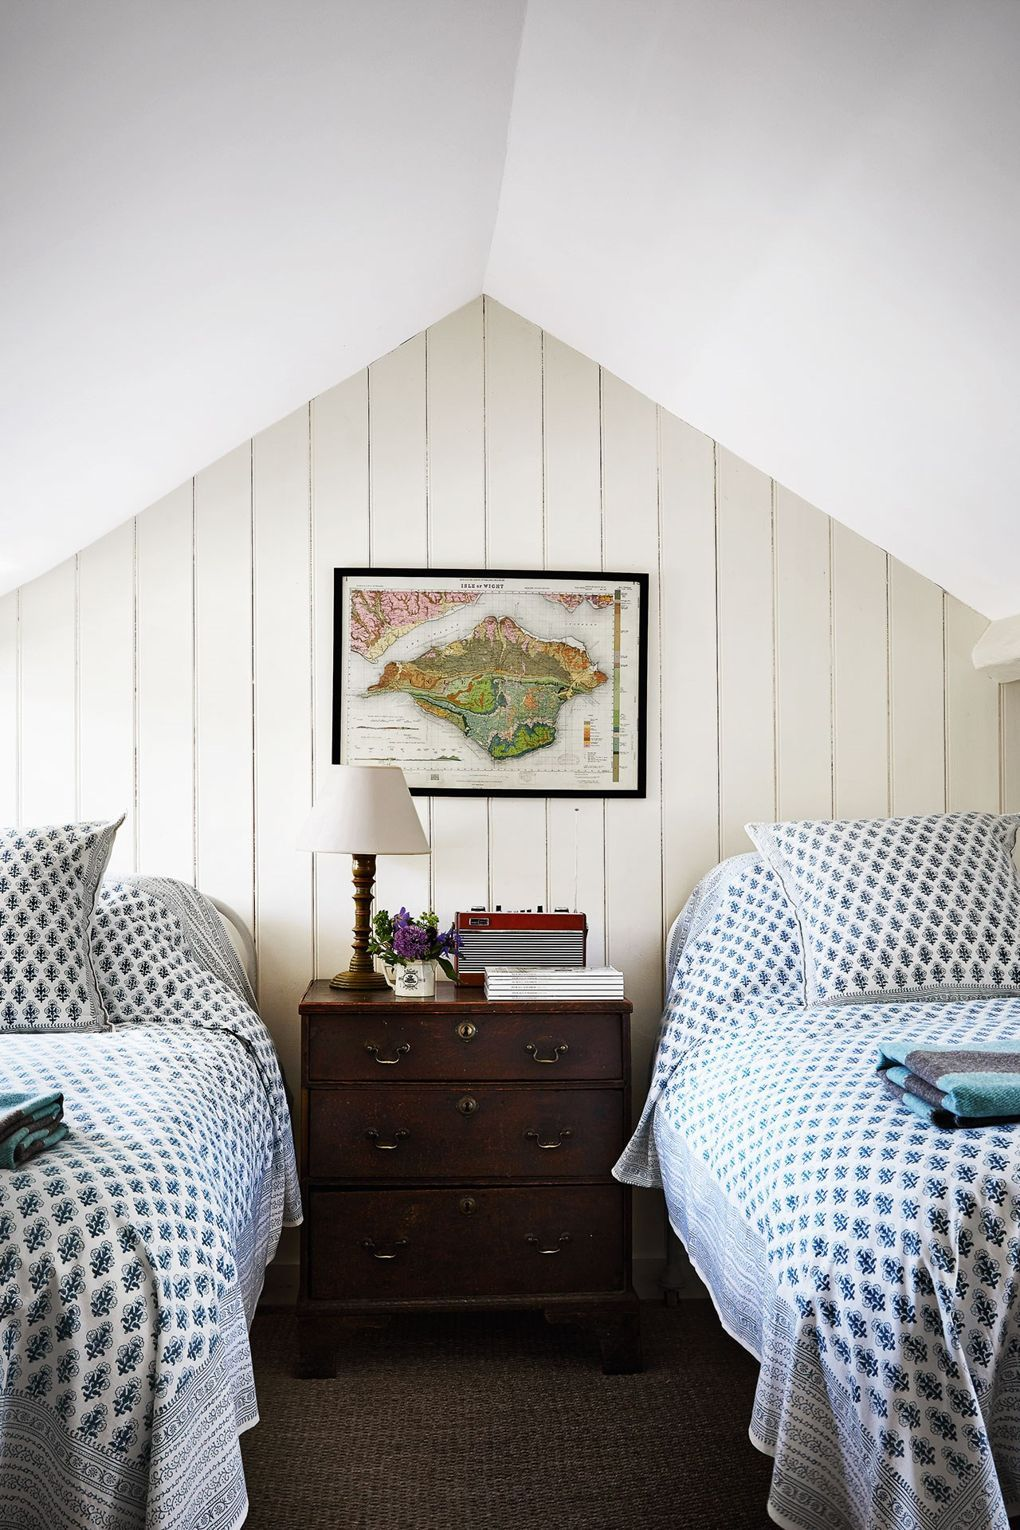 Loft conversion ideas | Attic, Twin beds and Country houses